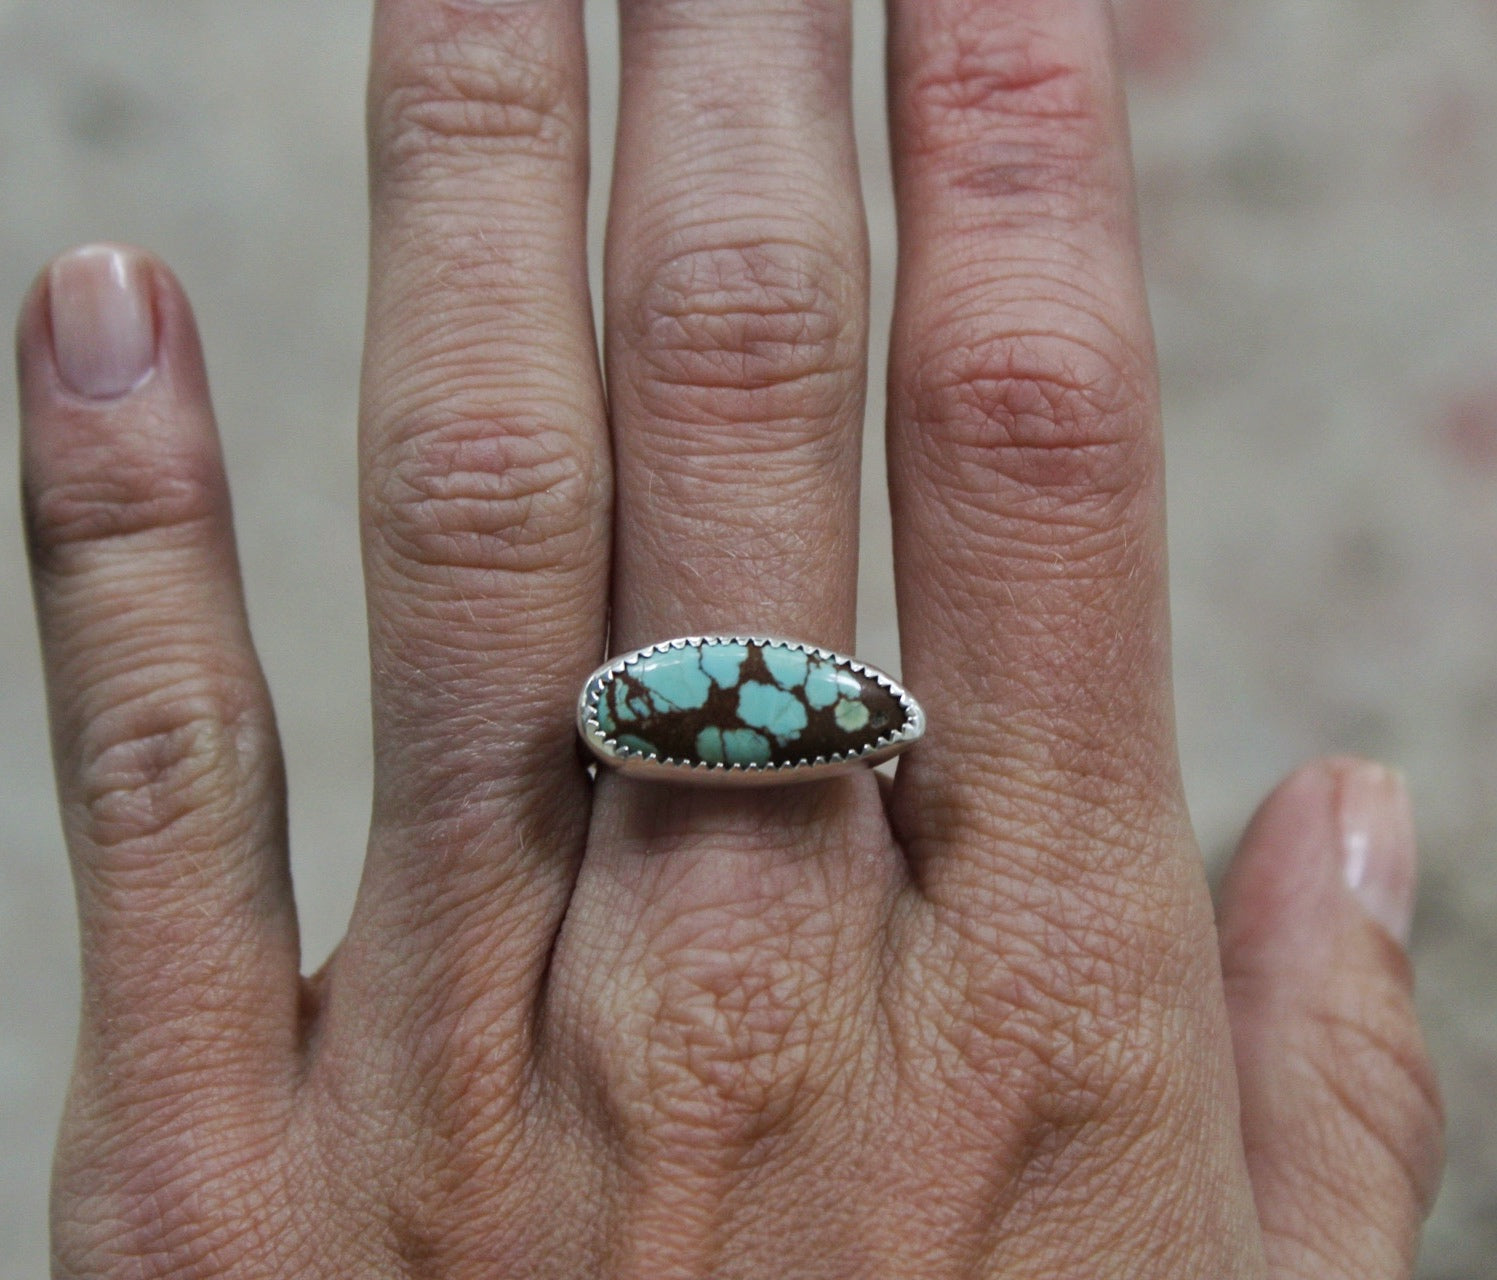 Horizontal Ring #62- Size 7